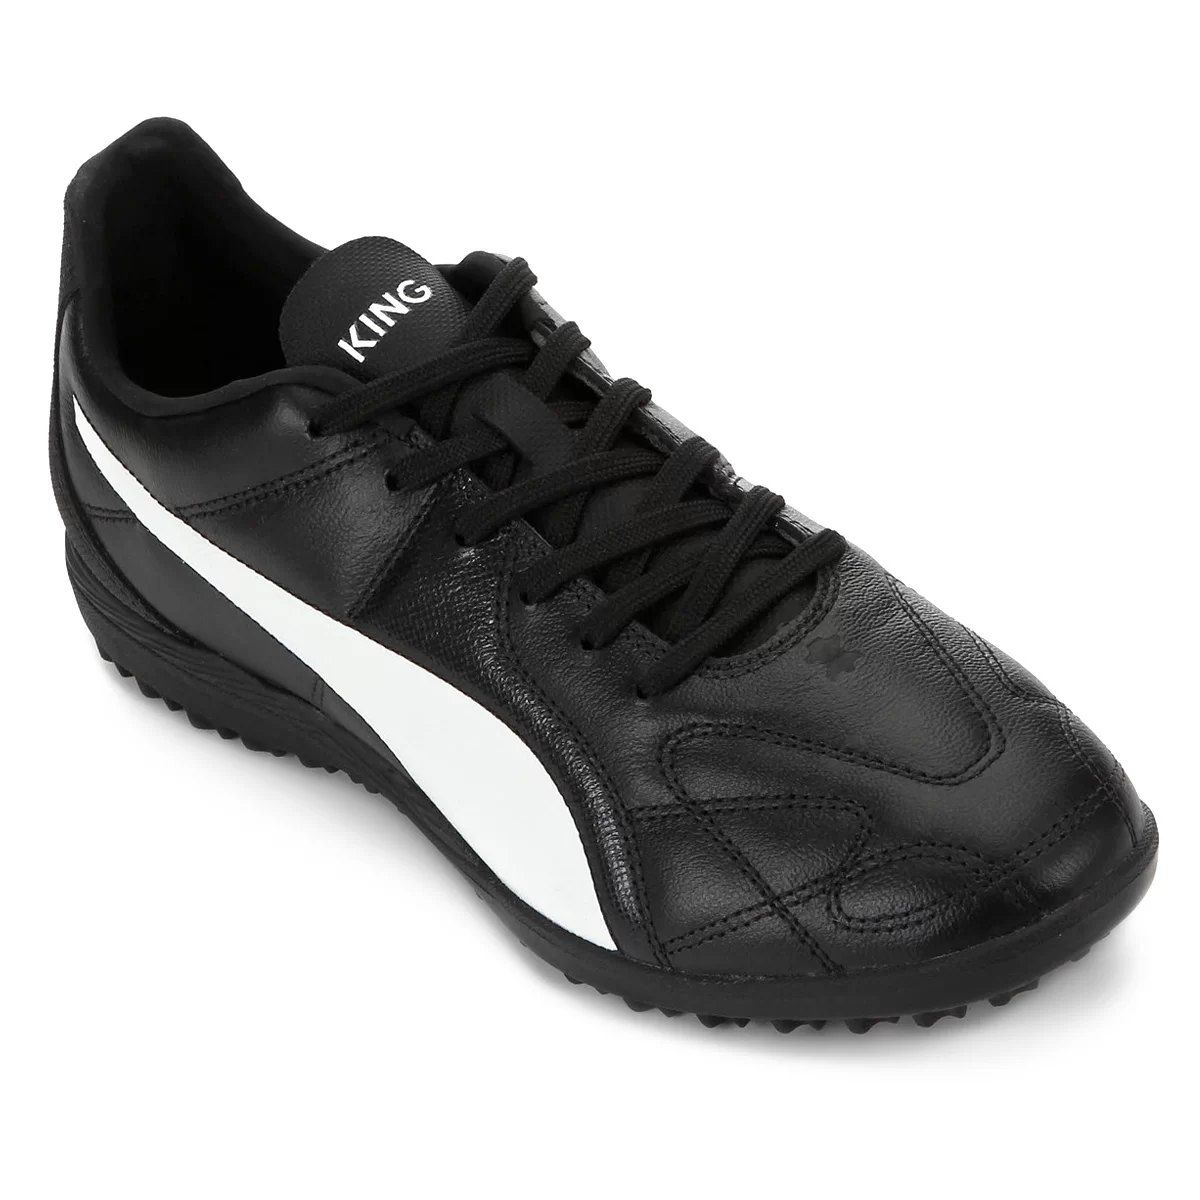 Chuteira Society Puma King Hero TT Bdp